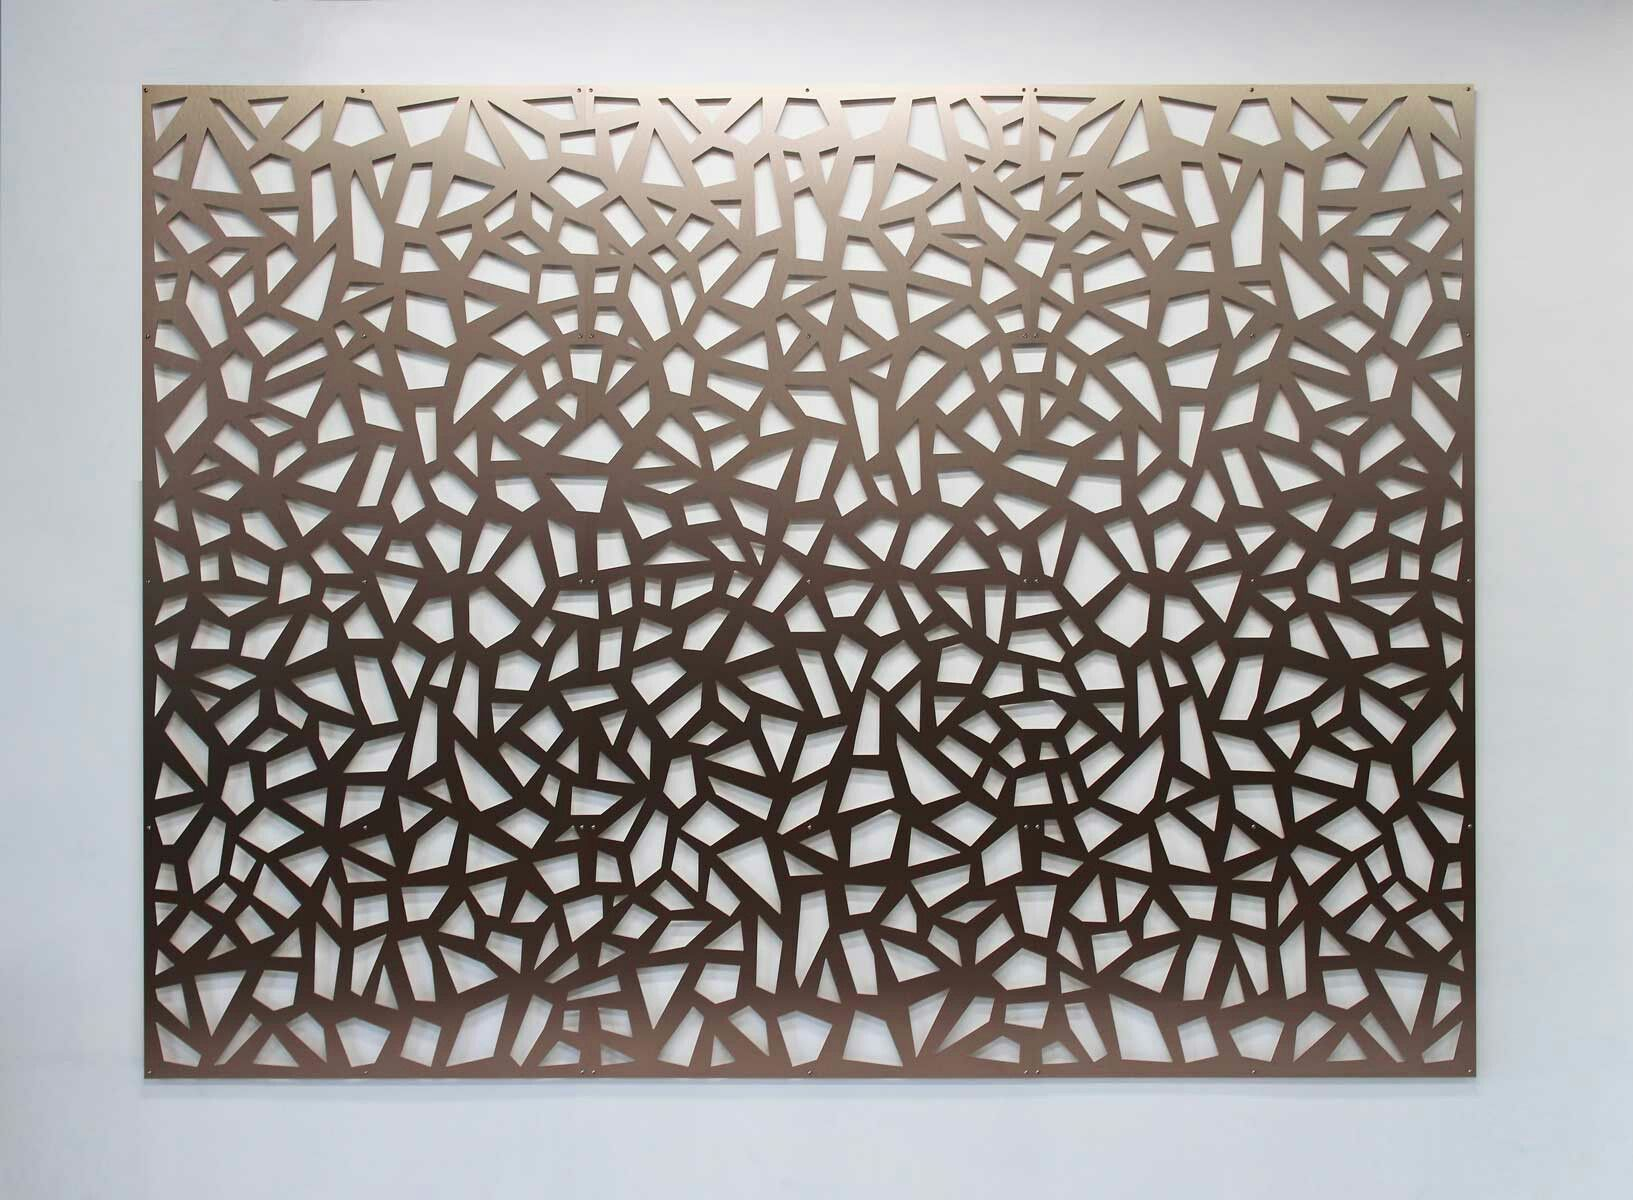 Decorative Screen Wall Art Bronze Wall Panels Continuous Cellular Pattern Lobby Feature Wall Wall Patterns Decorative Screen Panels Wallpaper Accent Wall